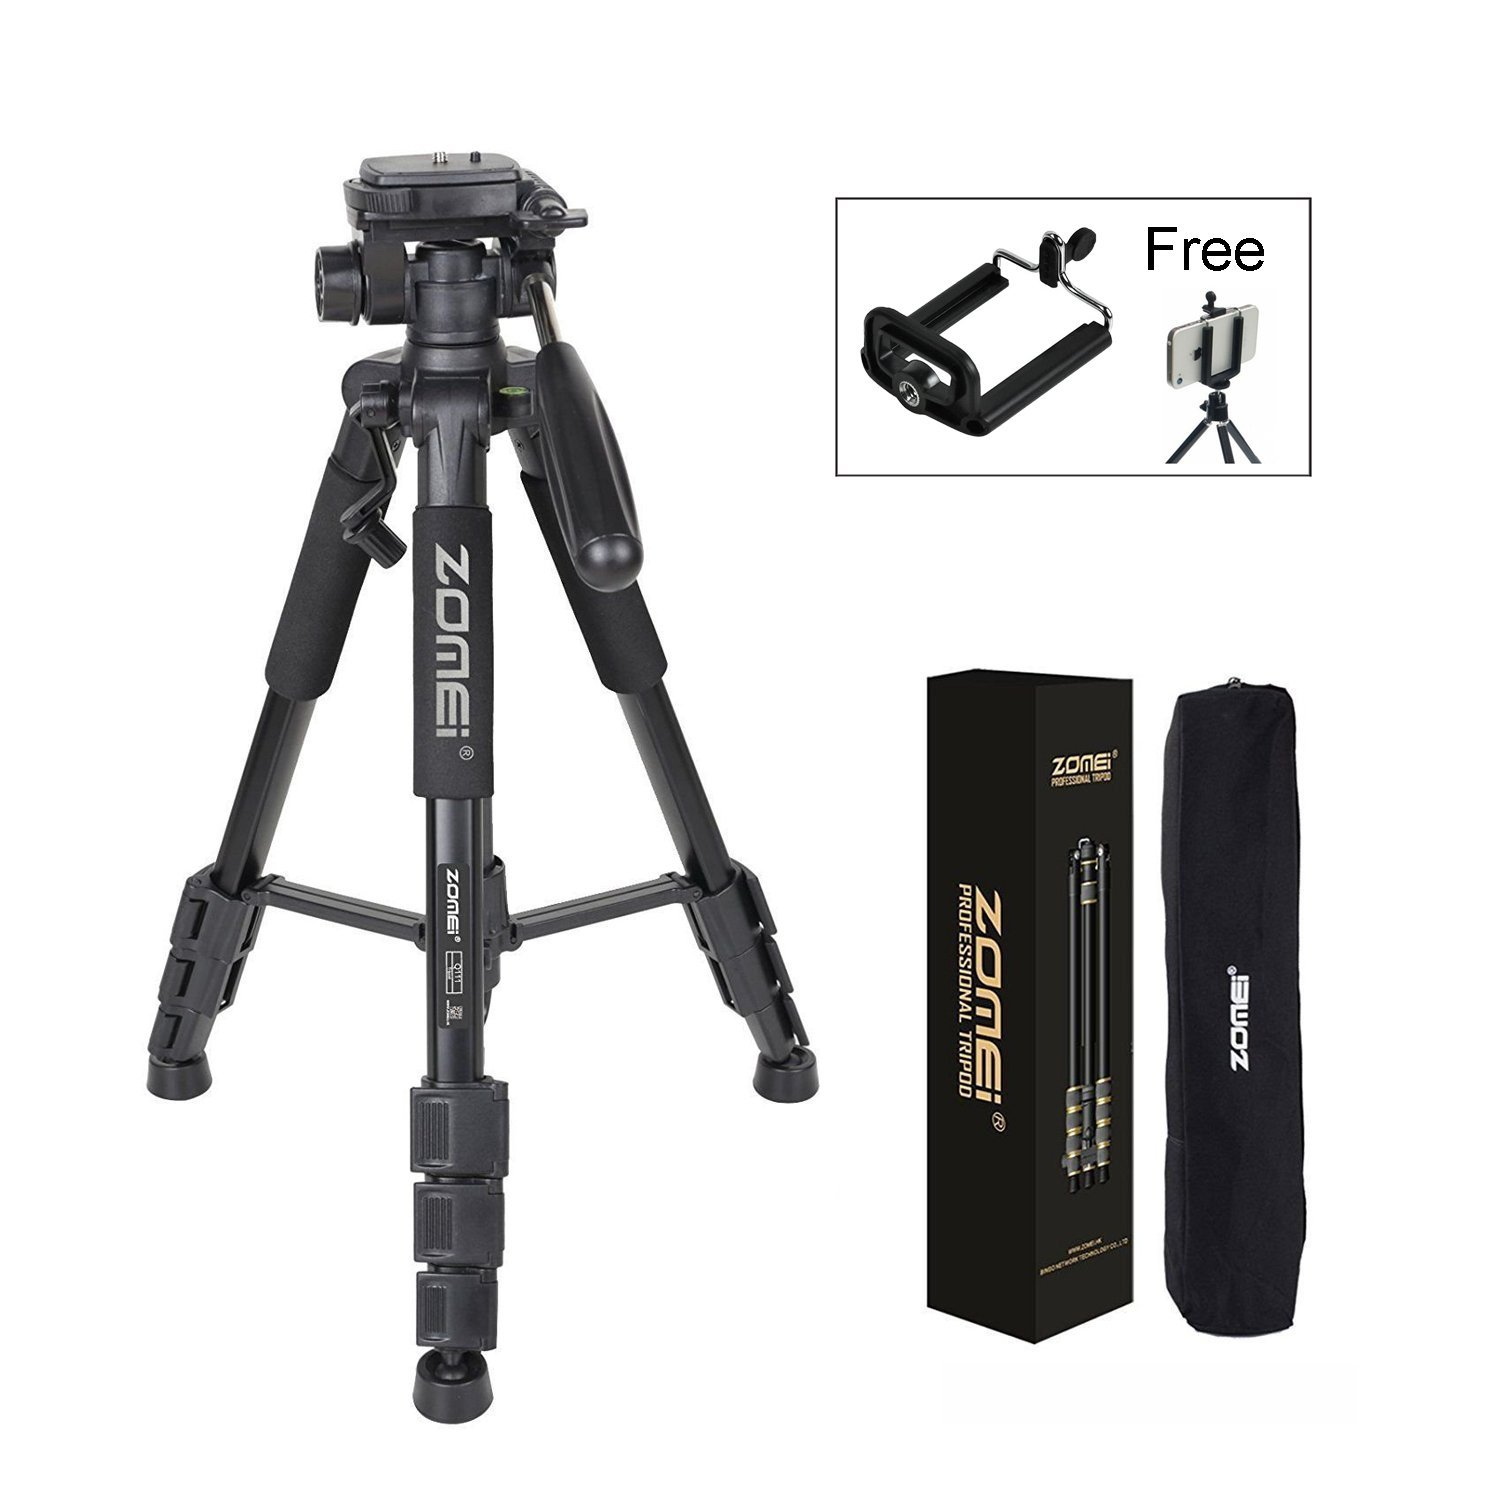 Zomei Q111 Professional Portable Travel Tripod مع حقيبة - كاميرا وصور